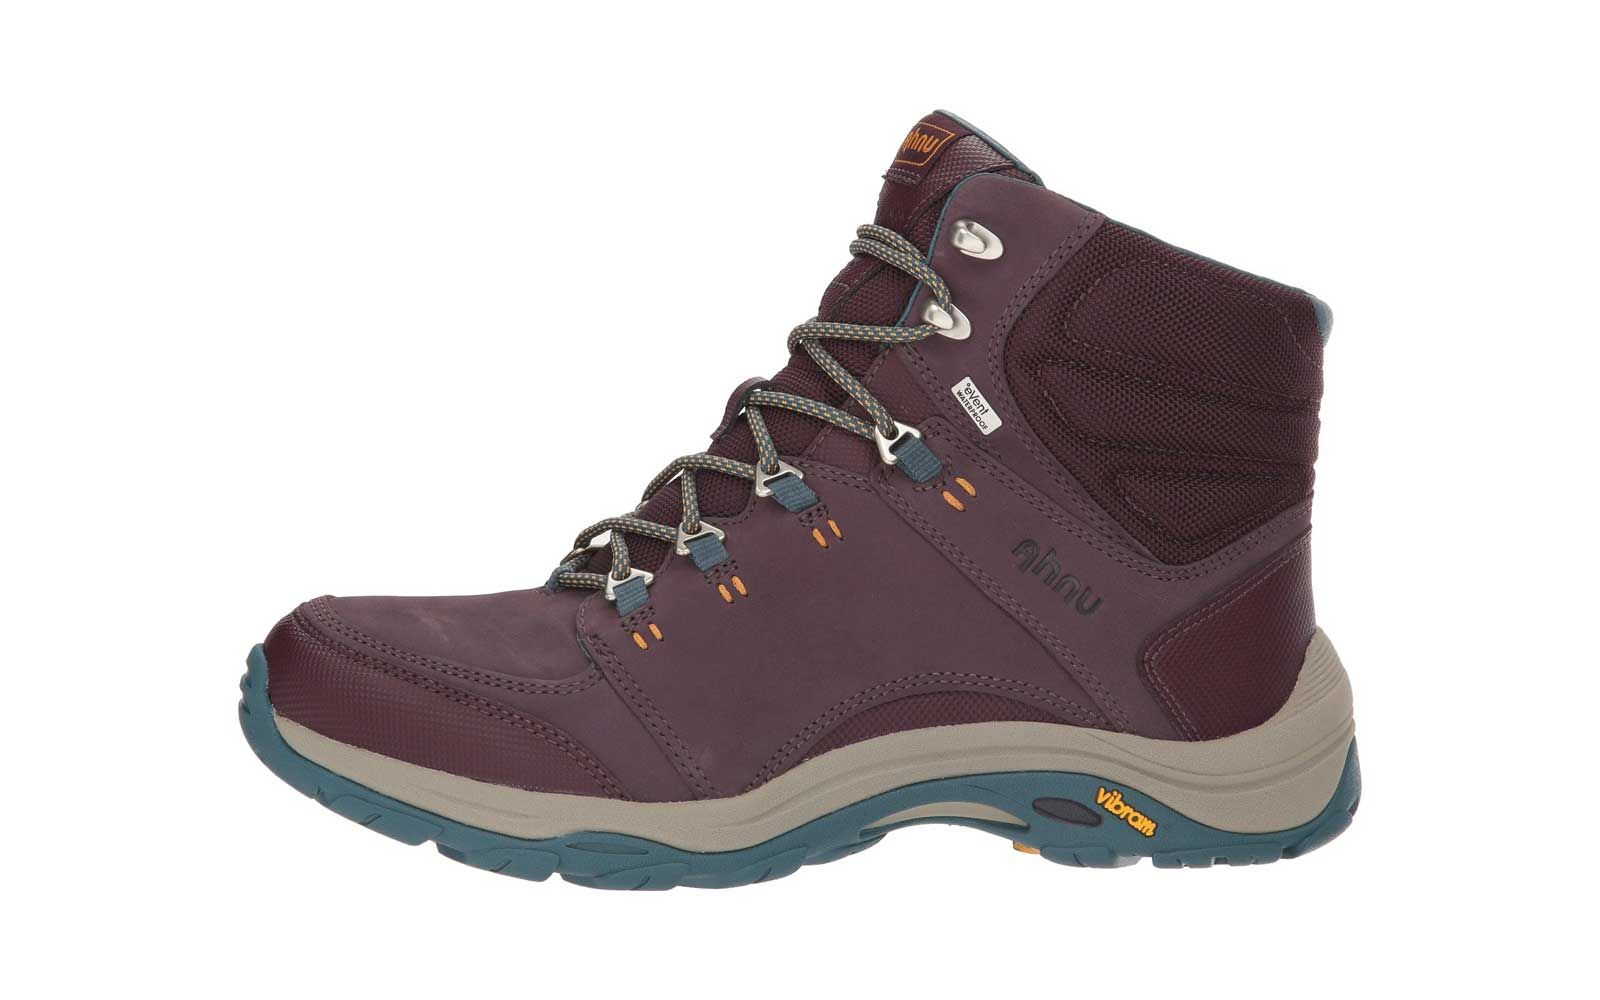 Photo of The 20 Best Hiking Shoes and Boots for Women